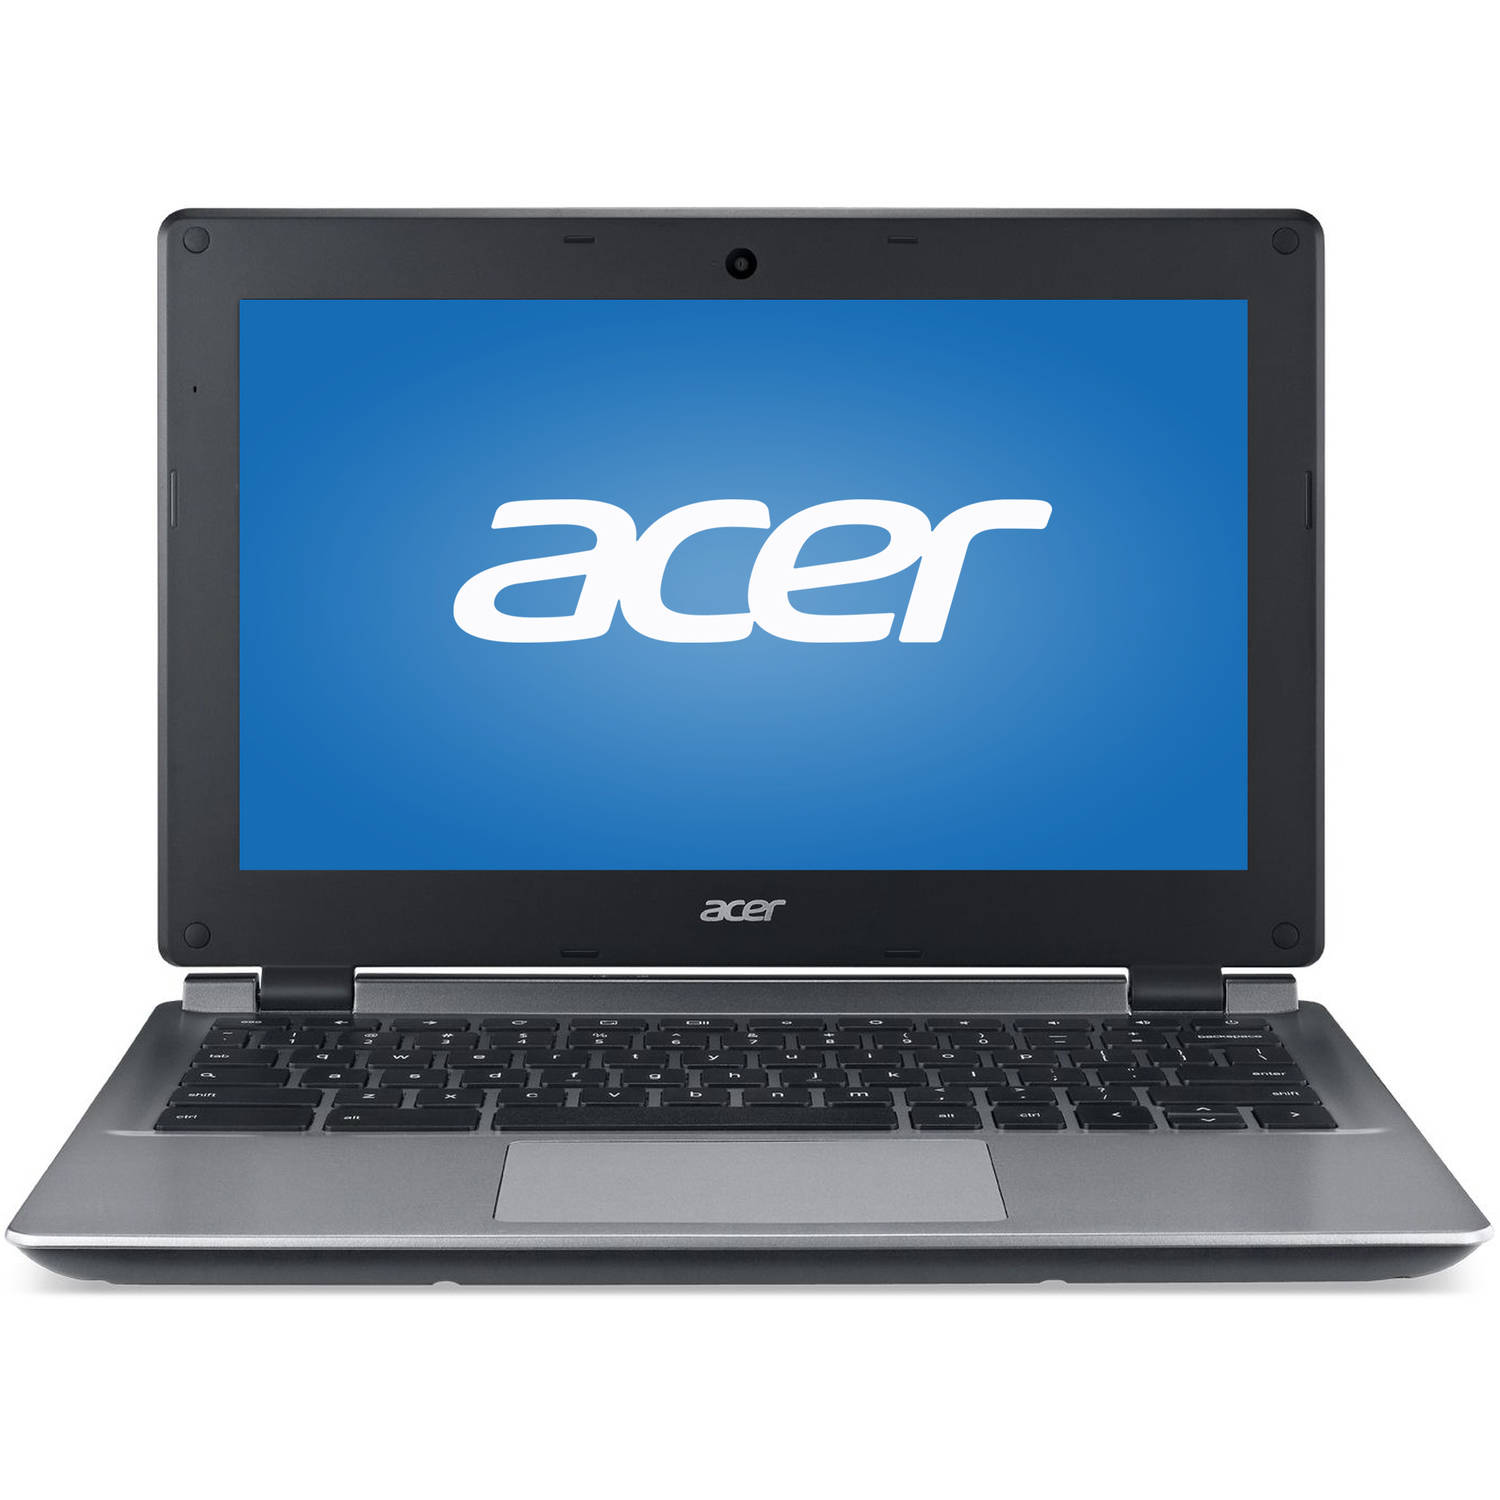 "Acer Black 11.6"" C730 Chromebook PC with Intel Celeron N2840 Processor, 4GB Memory, 16GB eMMC Drive and Chrome"